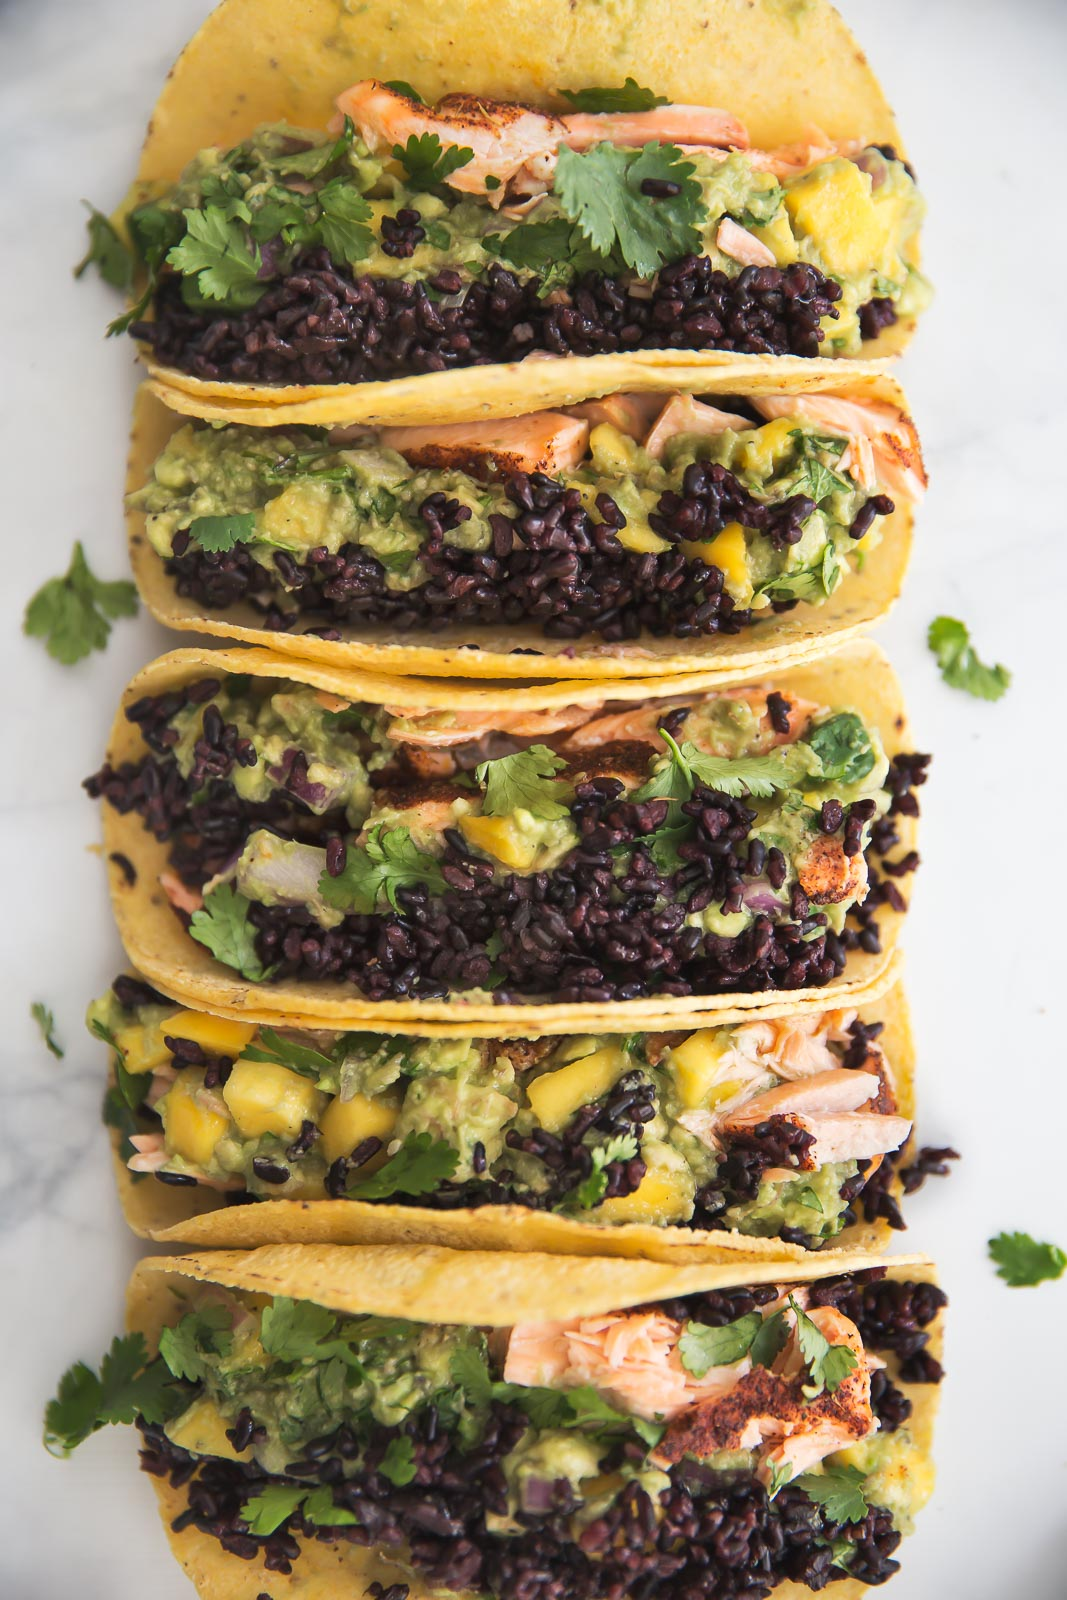 Salmon tacos with black rice and cilantro